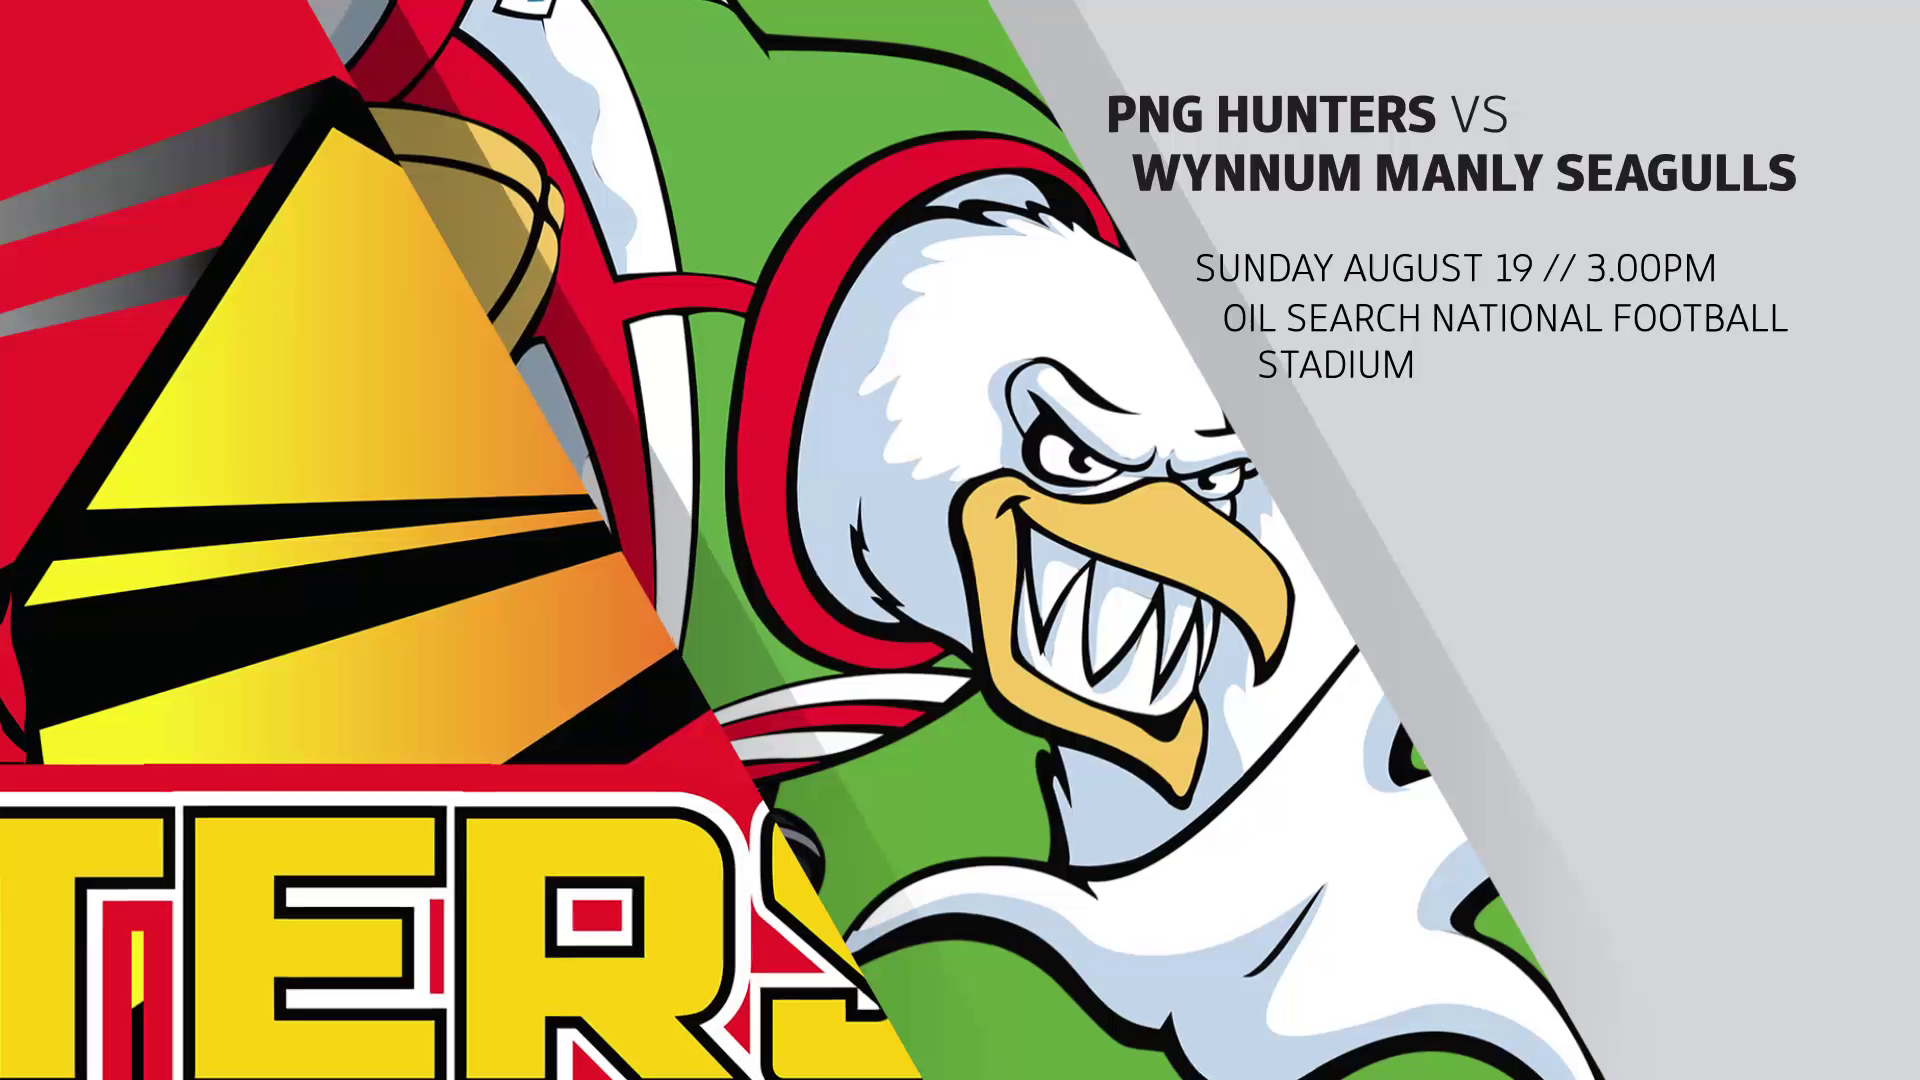 Clipart hunters rugby league jpg library library Intrust Super Cup Round 23 Highlights: Hunters v Wynnum - QRL jpg library library